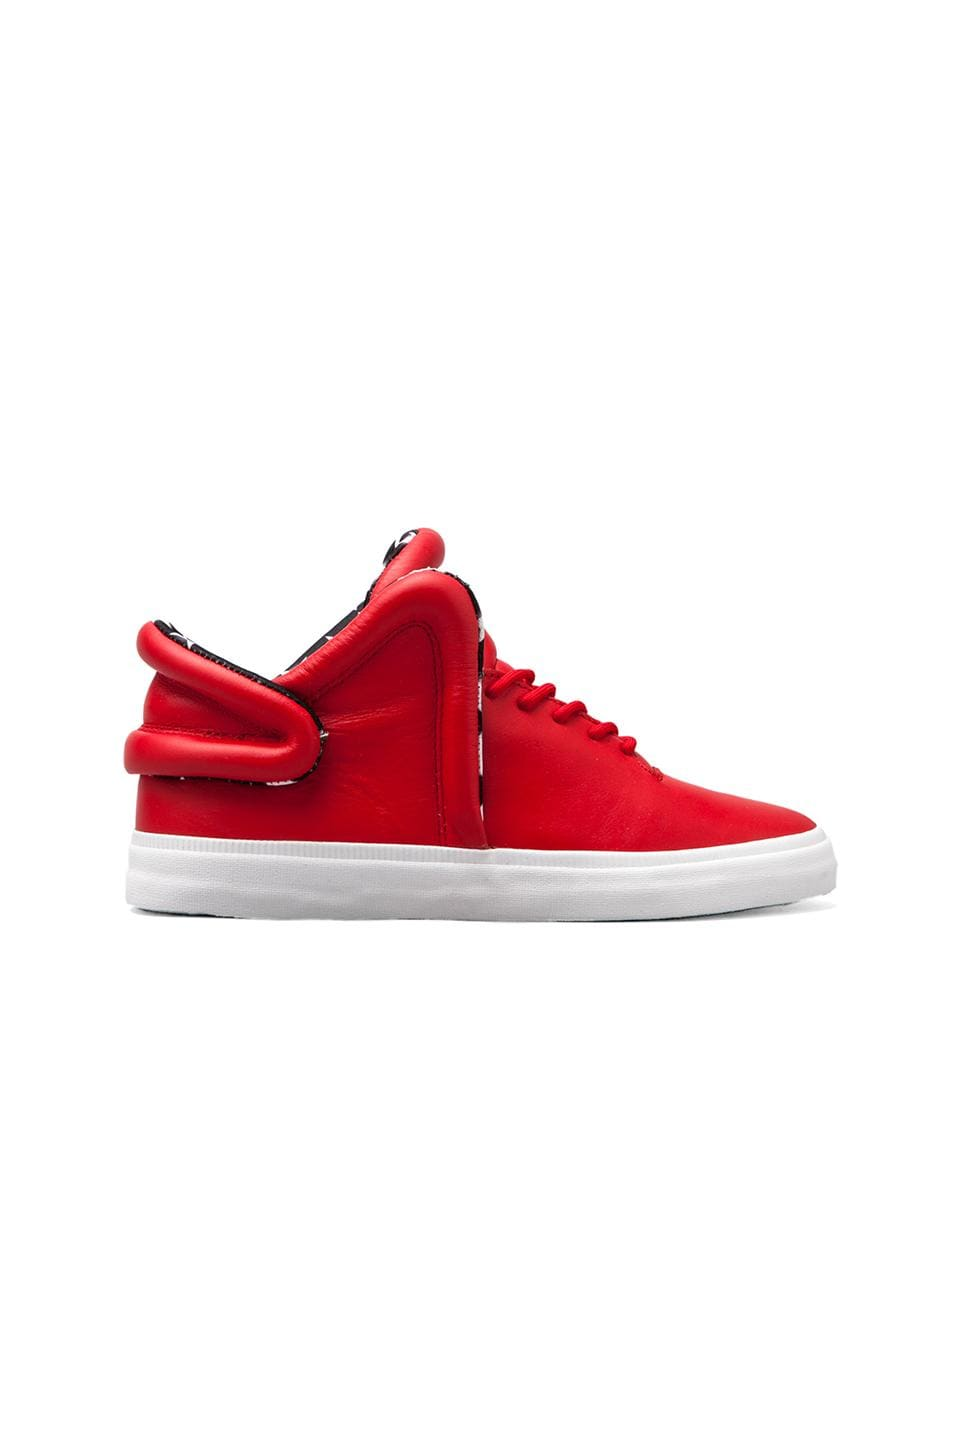 Supra Falcon in Red w/ Star Print